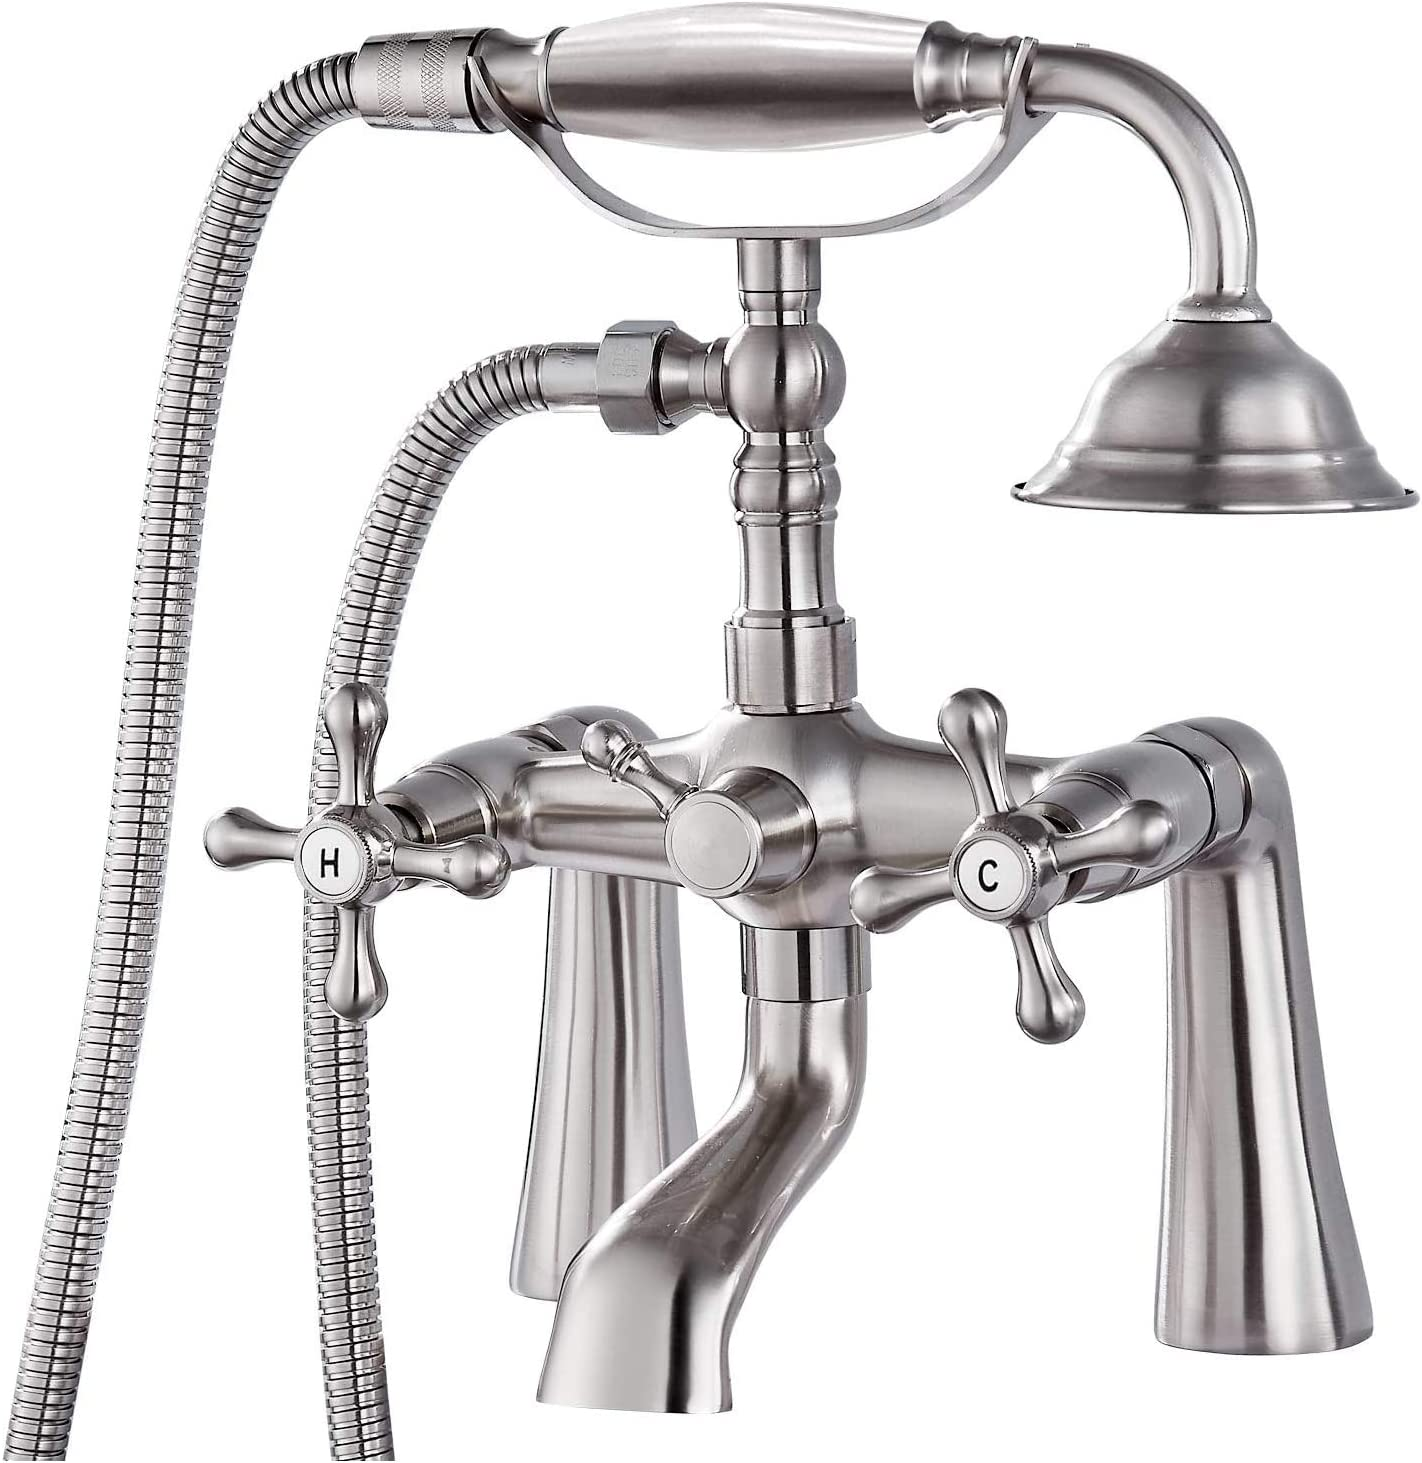 Deck Mount Tub Bathtub Clawfoot Faucet with Handheld Shower Brushed Nickel Telephone Shaped Sprayer Showerheld Double Cross Handle